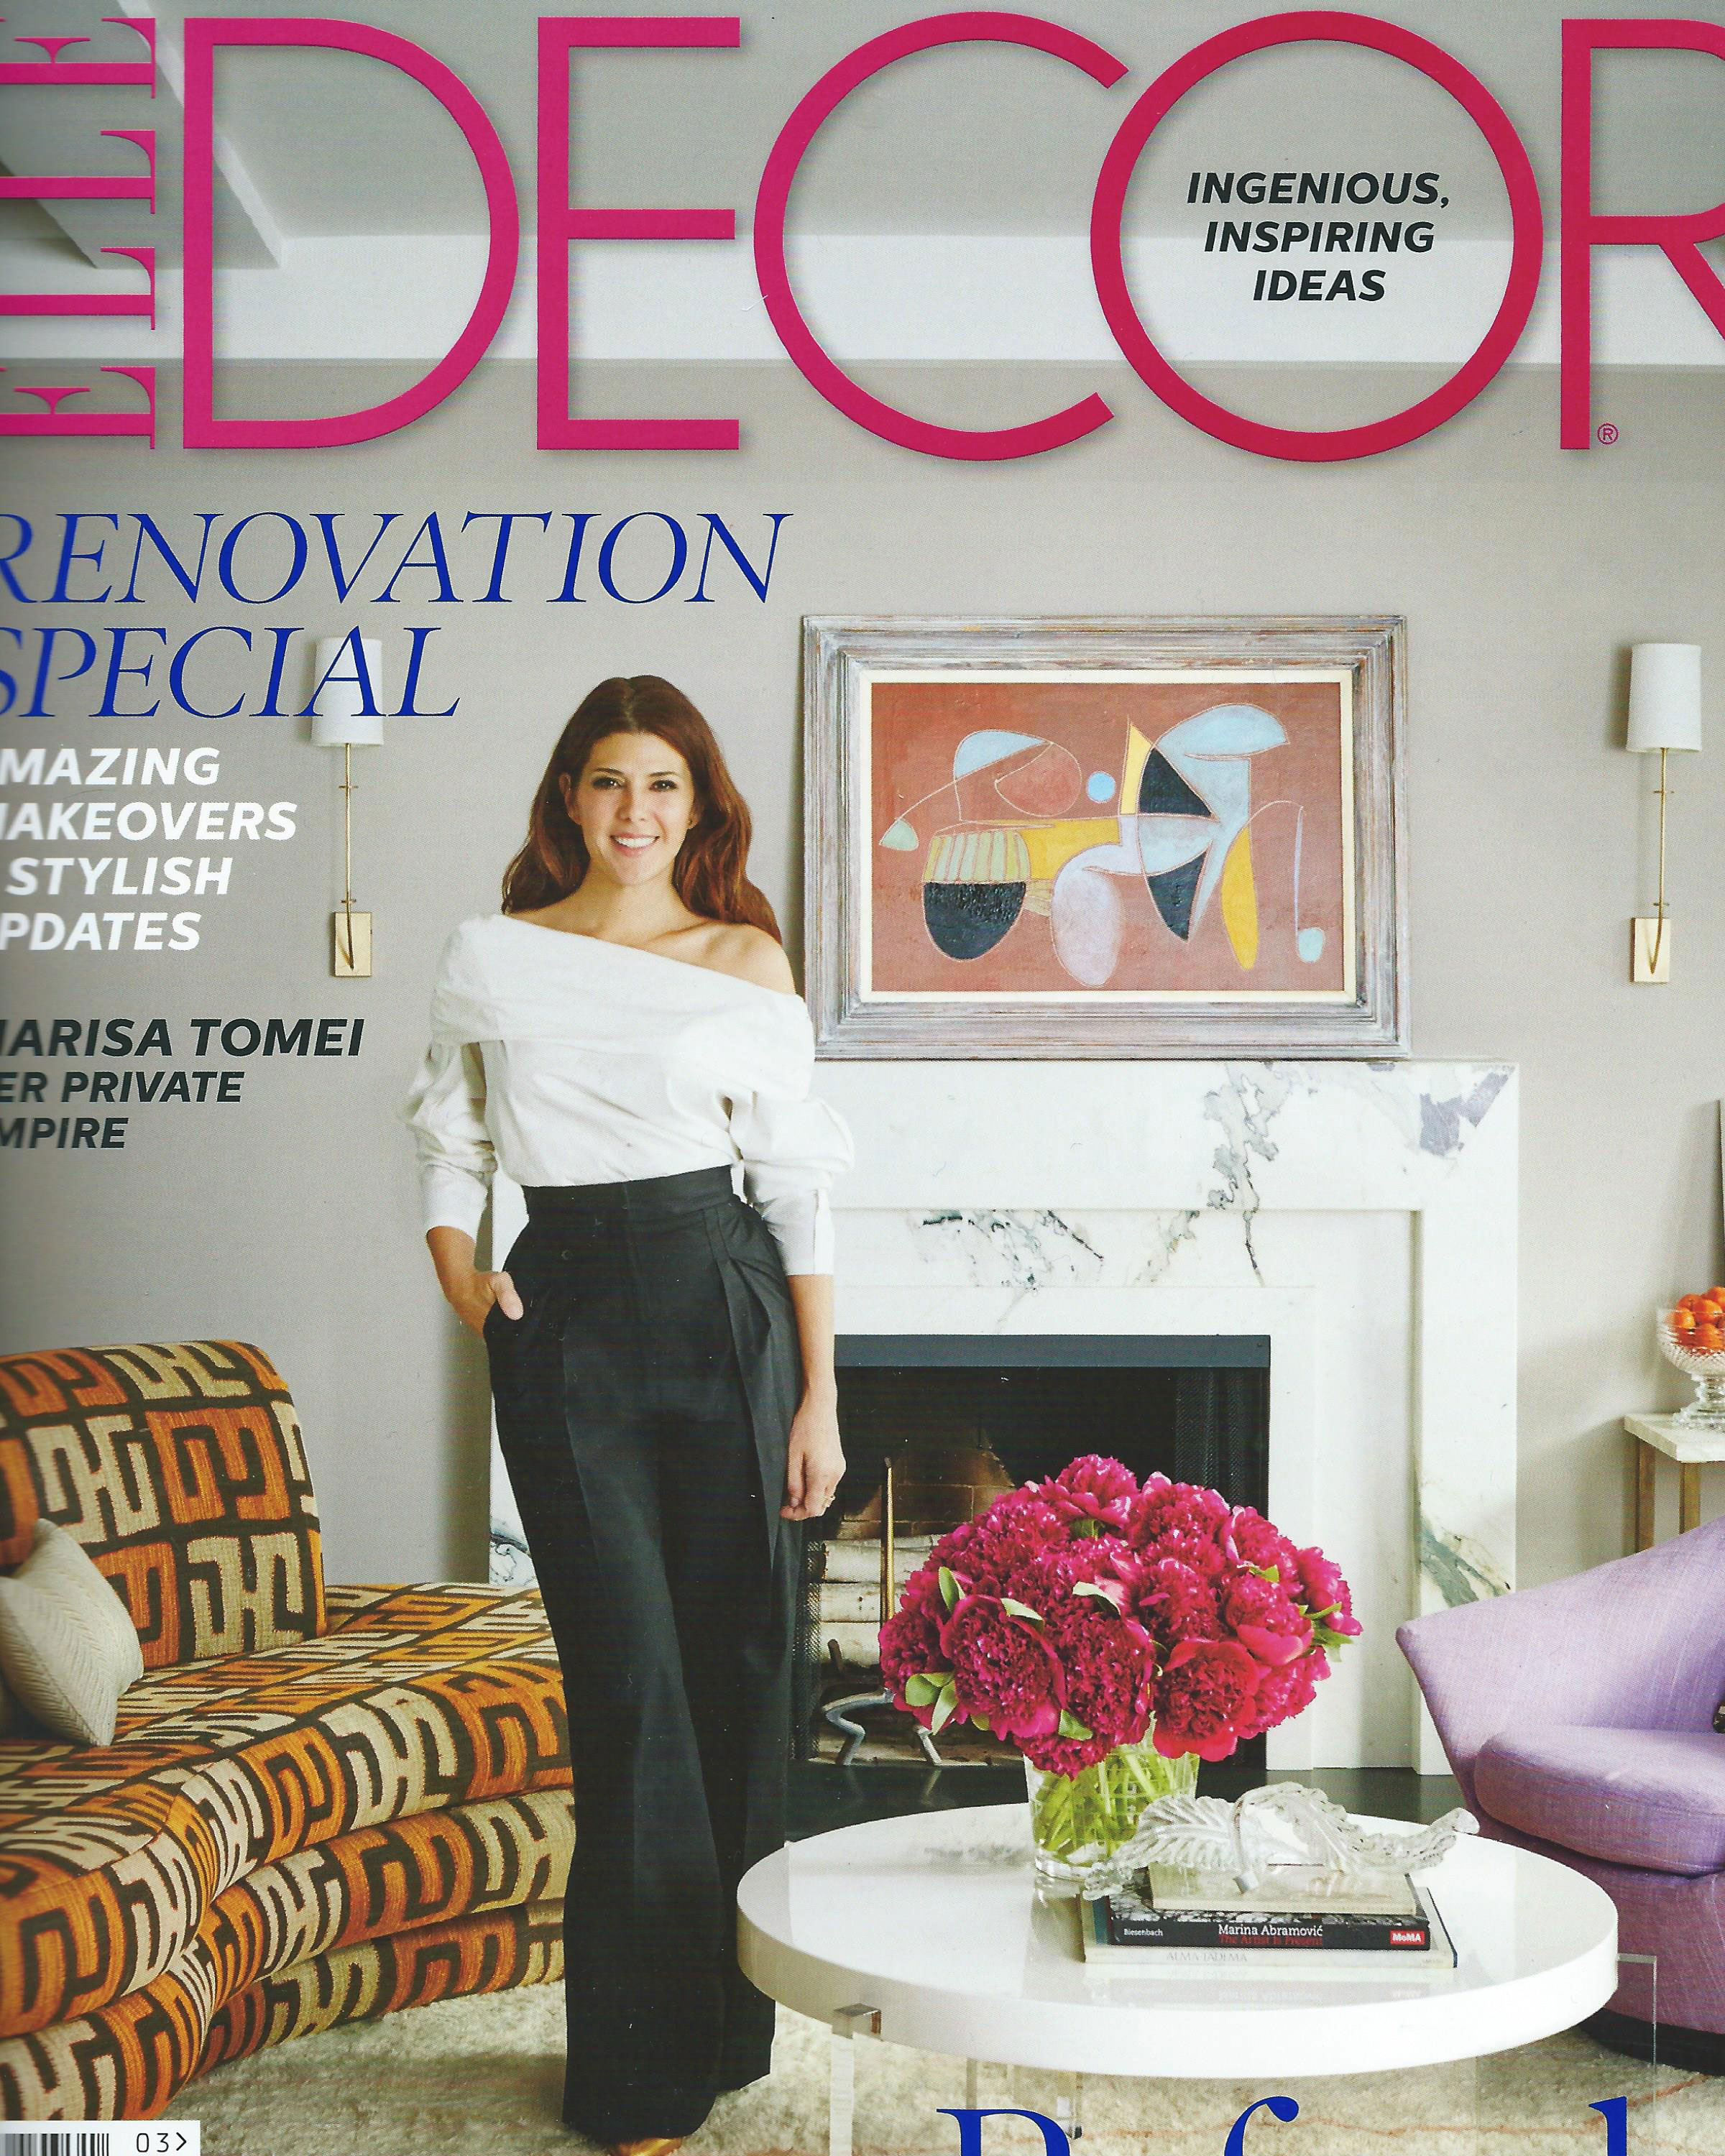 Elle Decor, 1 of 2